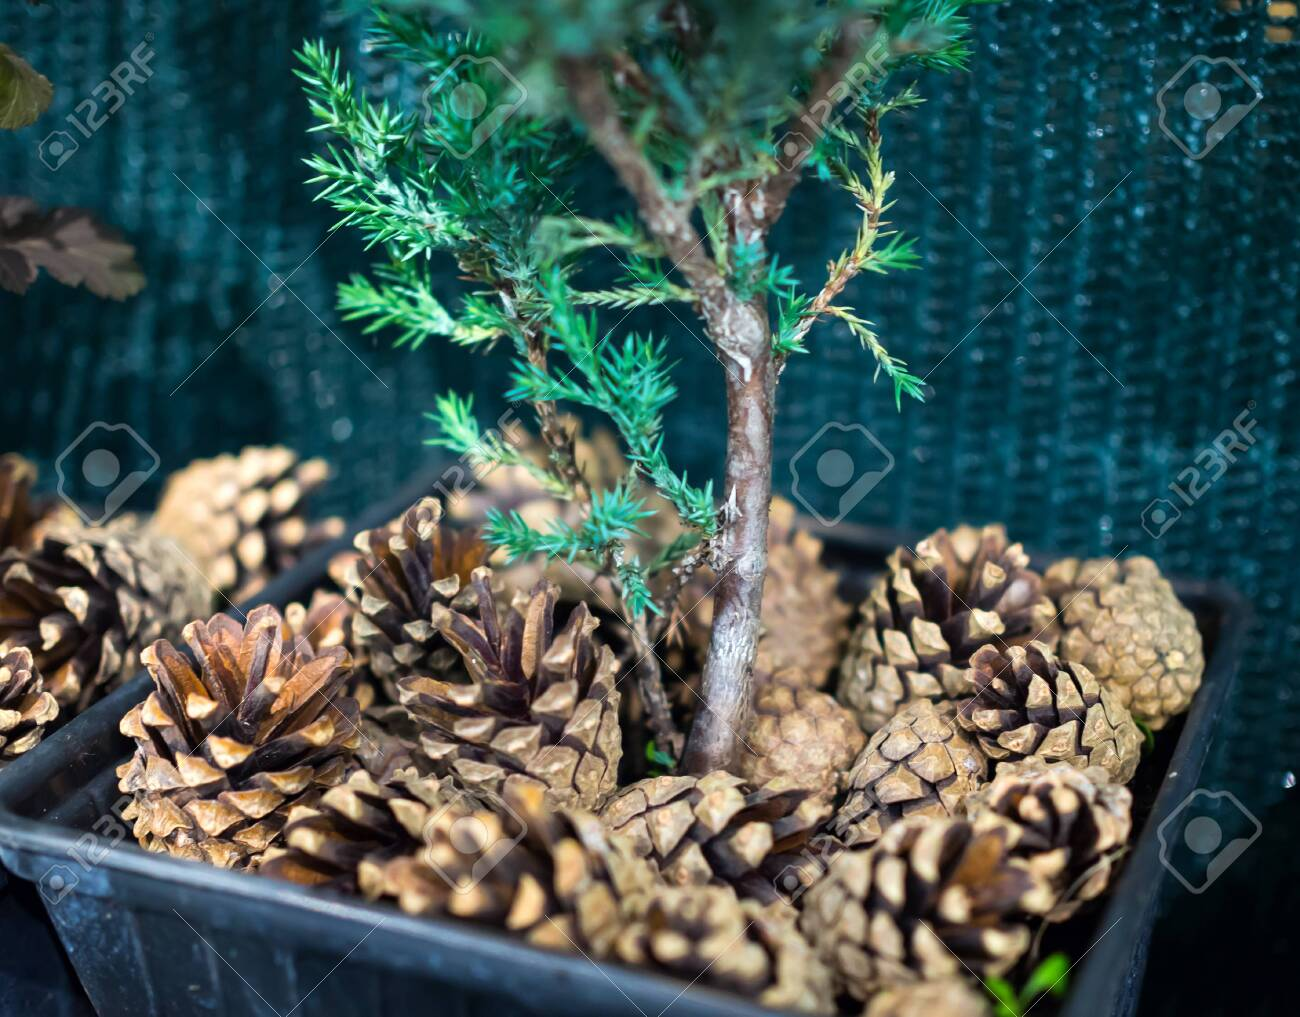 Decorative Mulching Of Soil In A Flower Pot With Pine Cones Stock